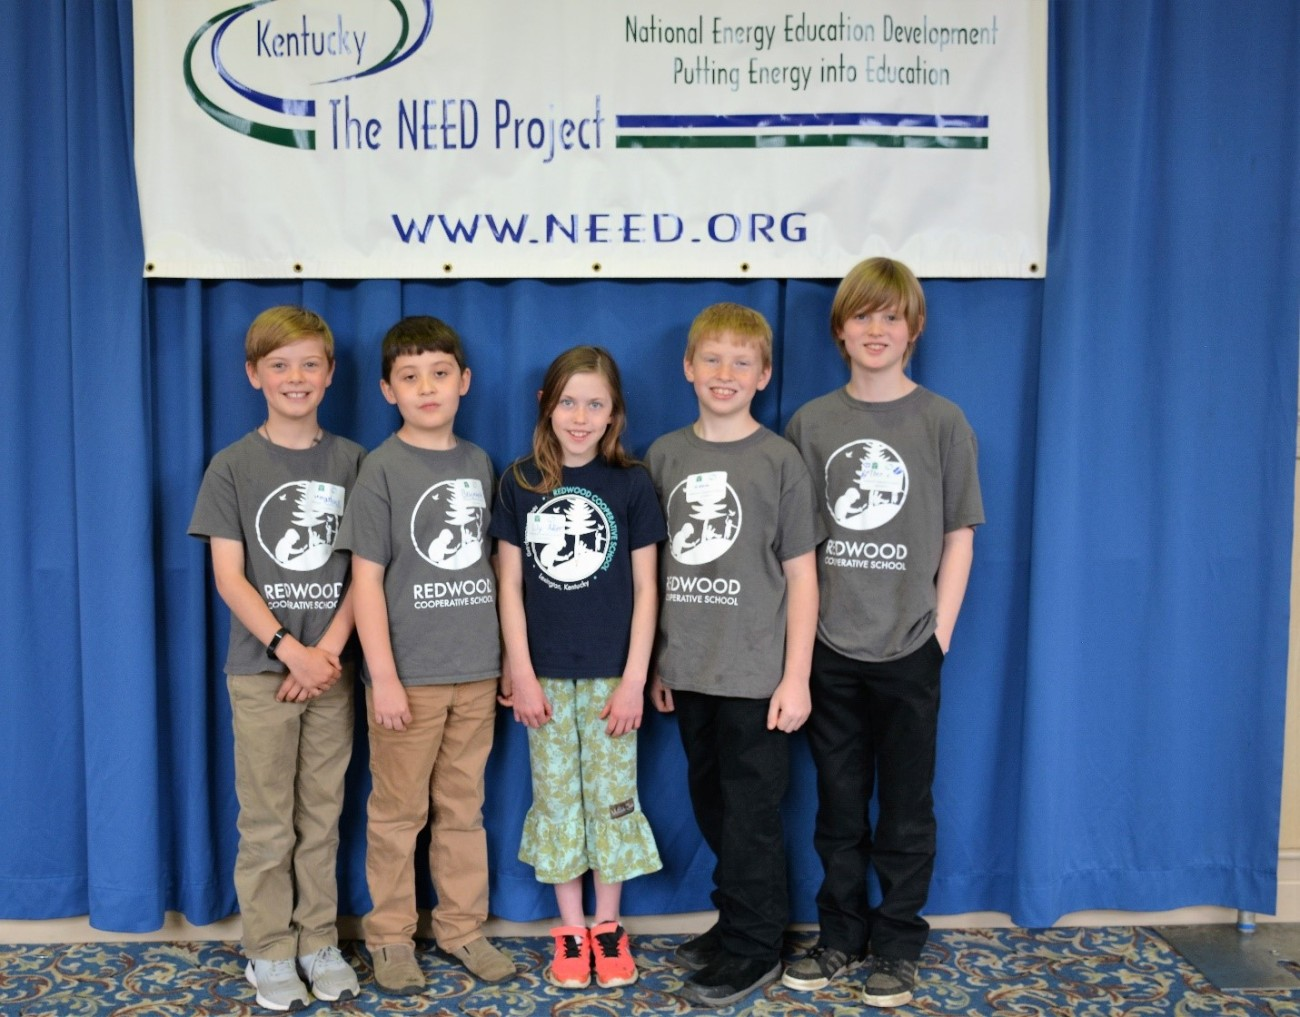 Students from Redwood Cooperative School who completed both a Kentucky NEED project as well as a Kentucky Green and Healthy Schools project in a single school year.